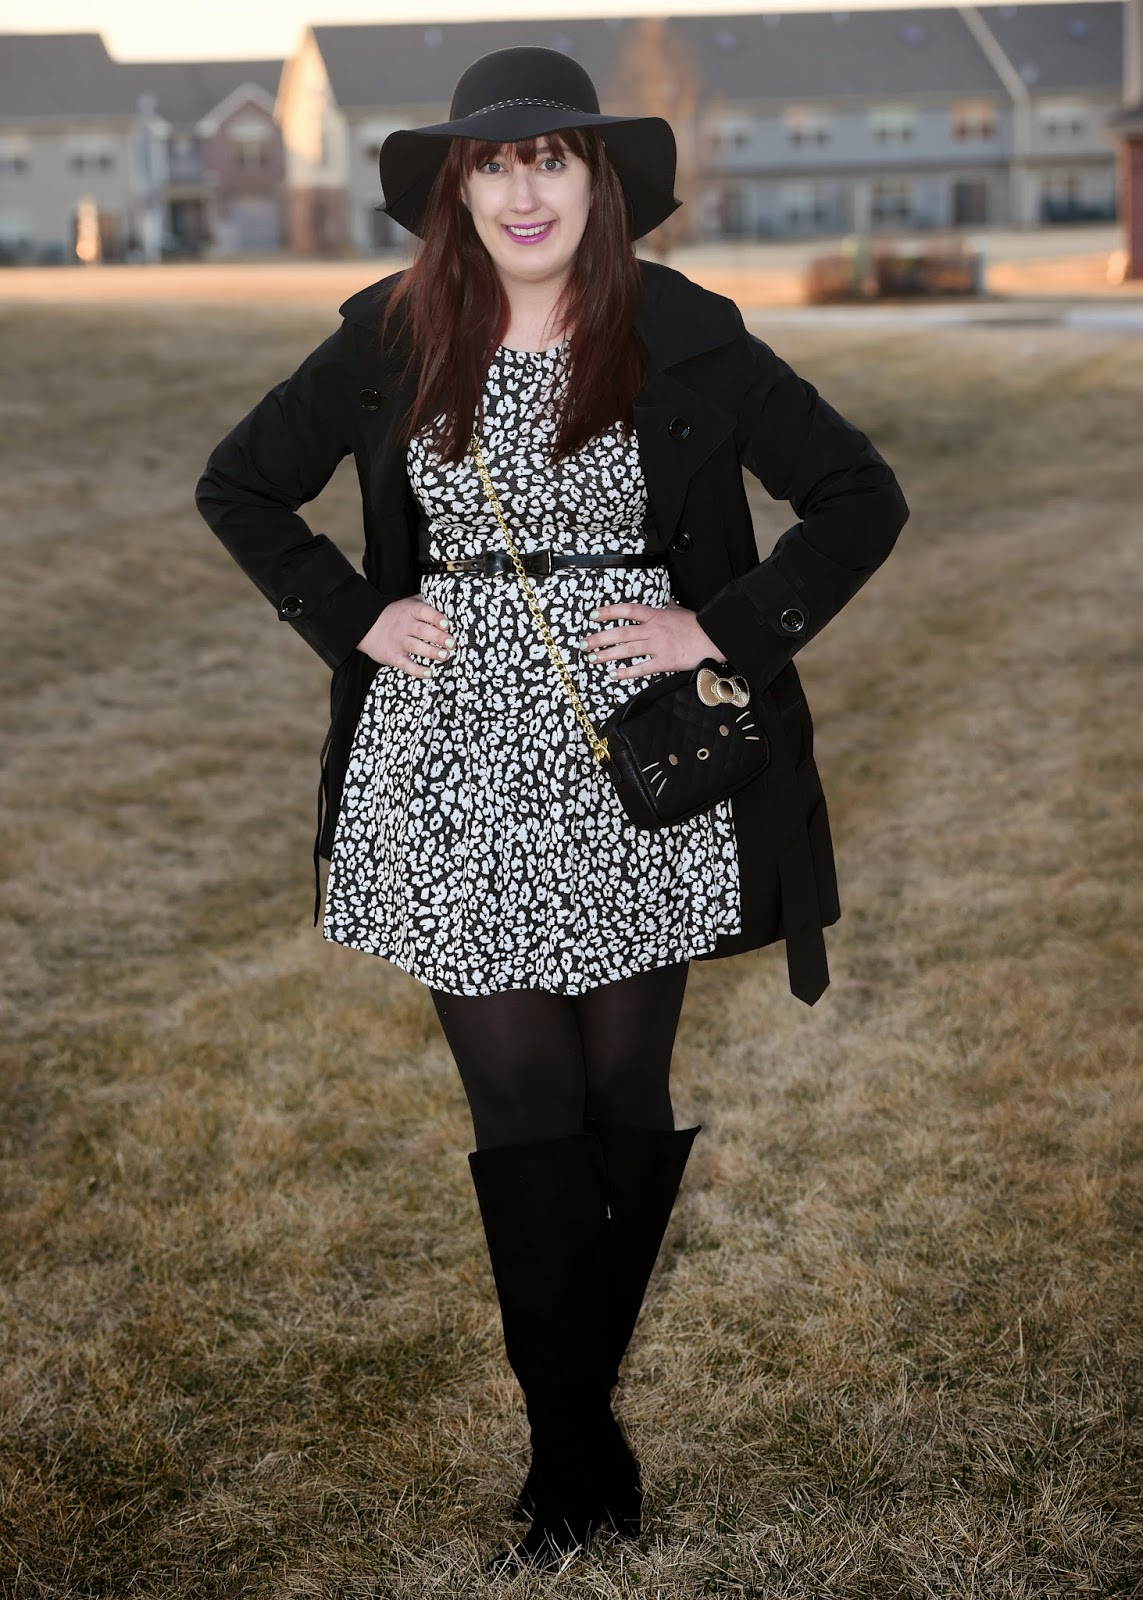 Samantha Chic AMI Clubwear dresses HM Hello Kitty layering London Fog over the knee boots Spring break Style tights transitional layers